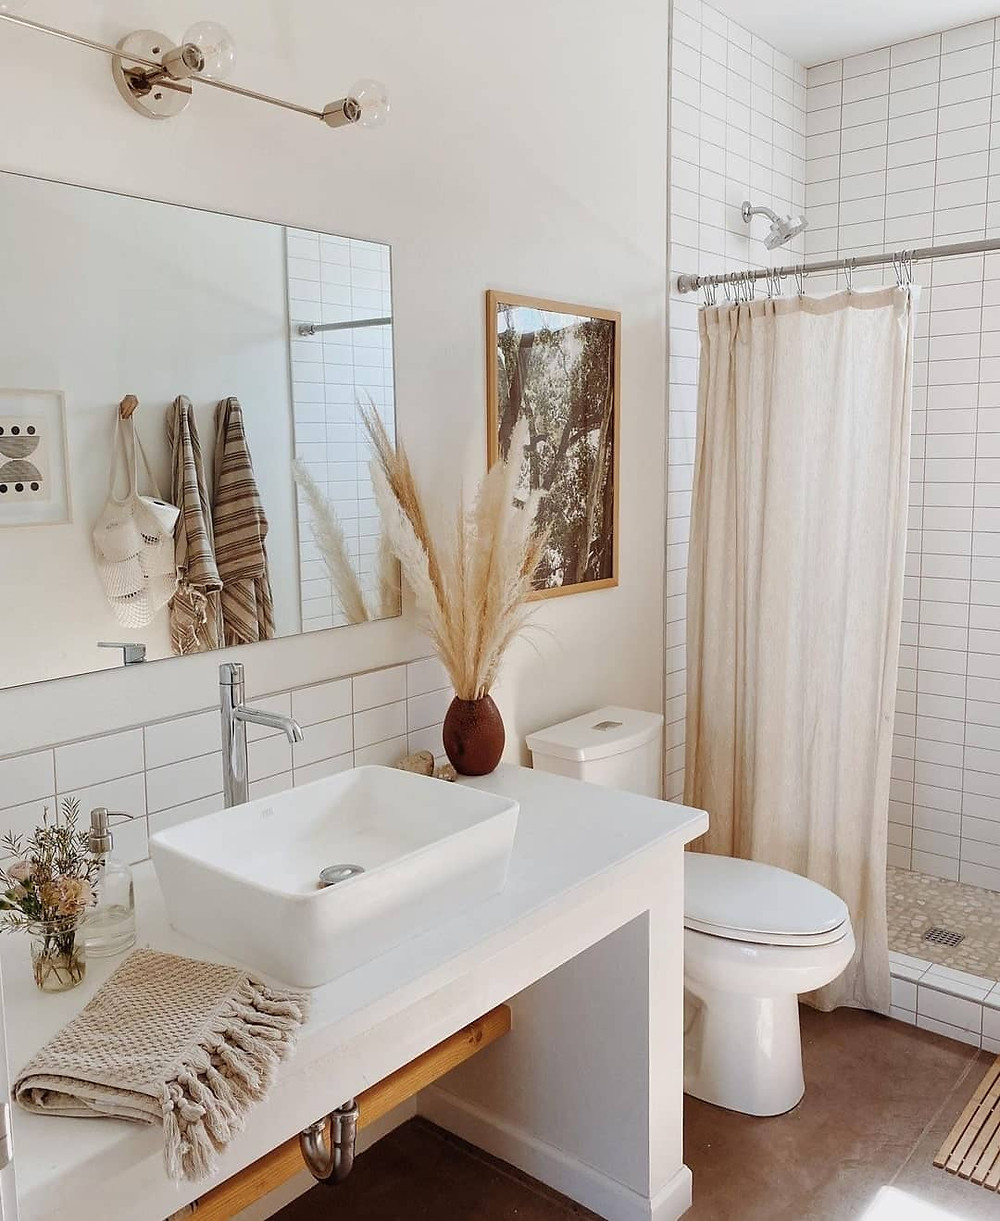 linen shower curtain for spa vibes in bathroom